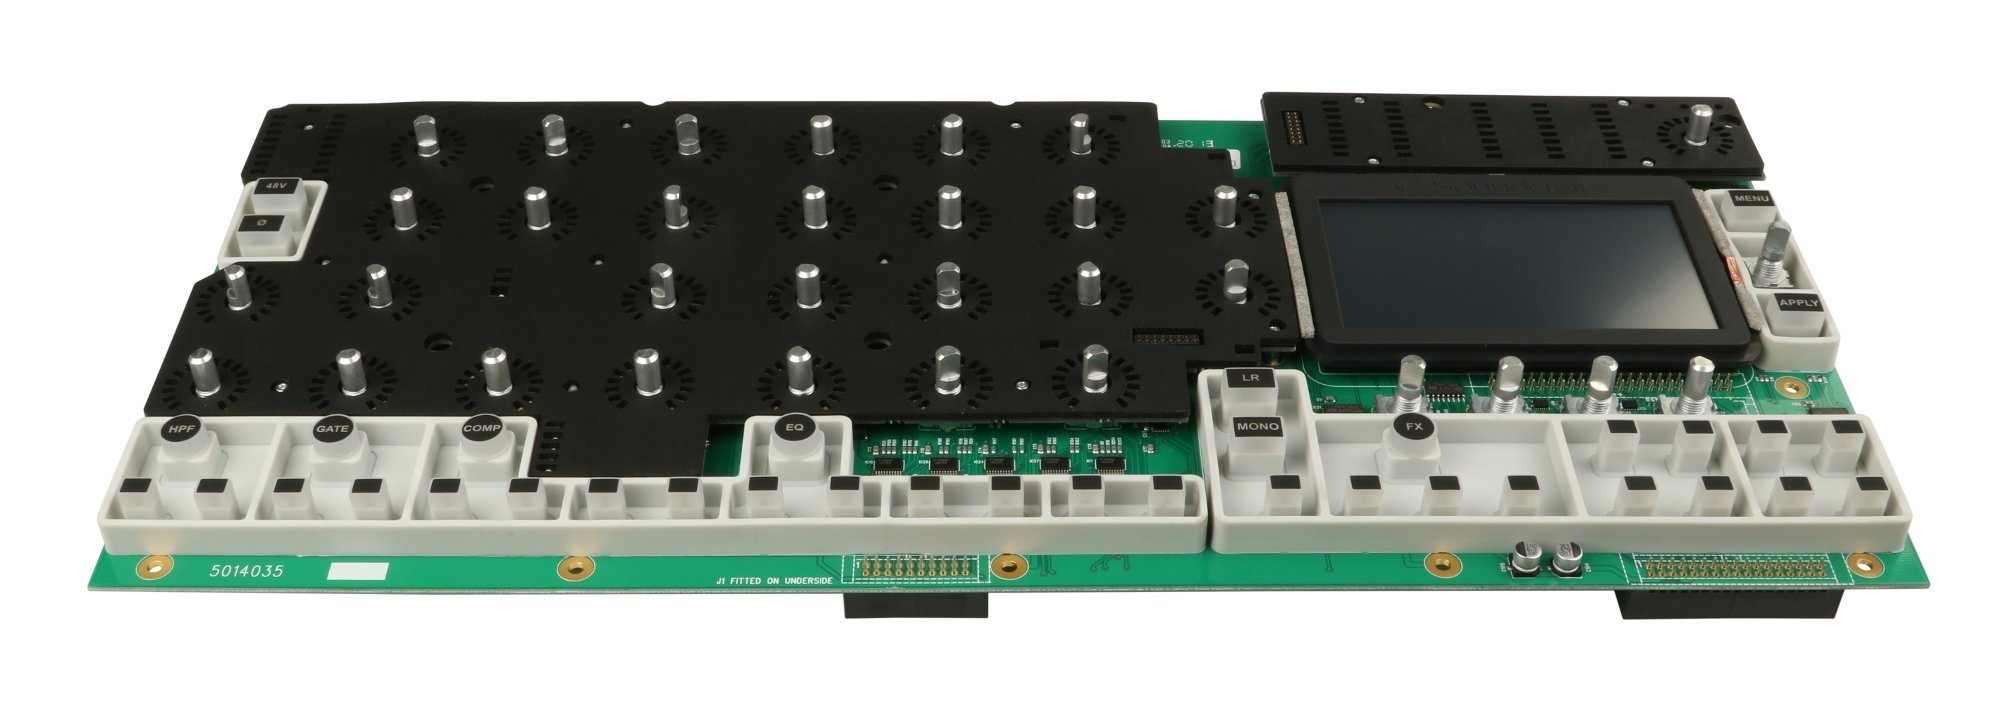 Main Top PCB Assembly with Encoders for Si Performer 2